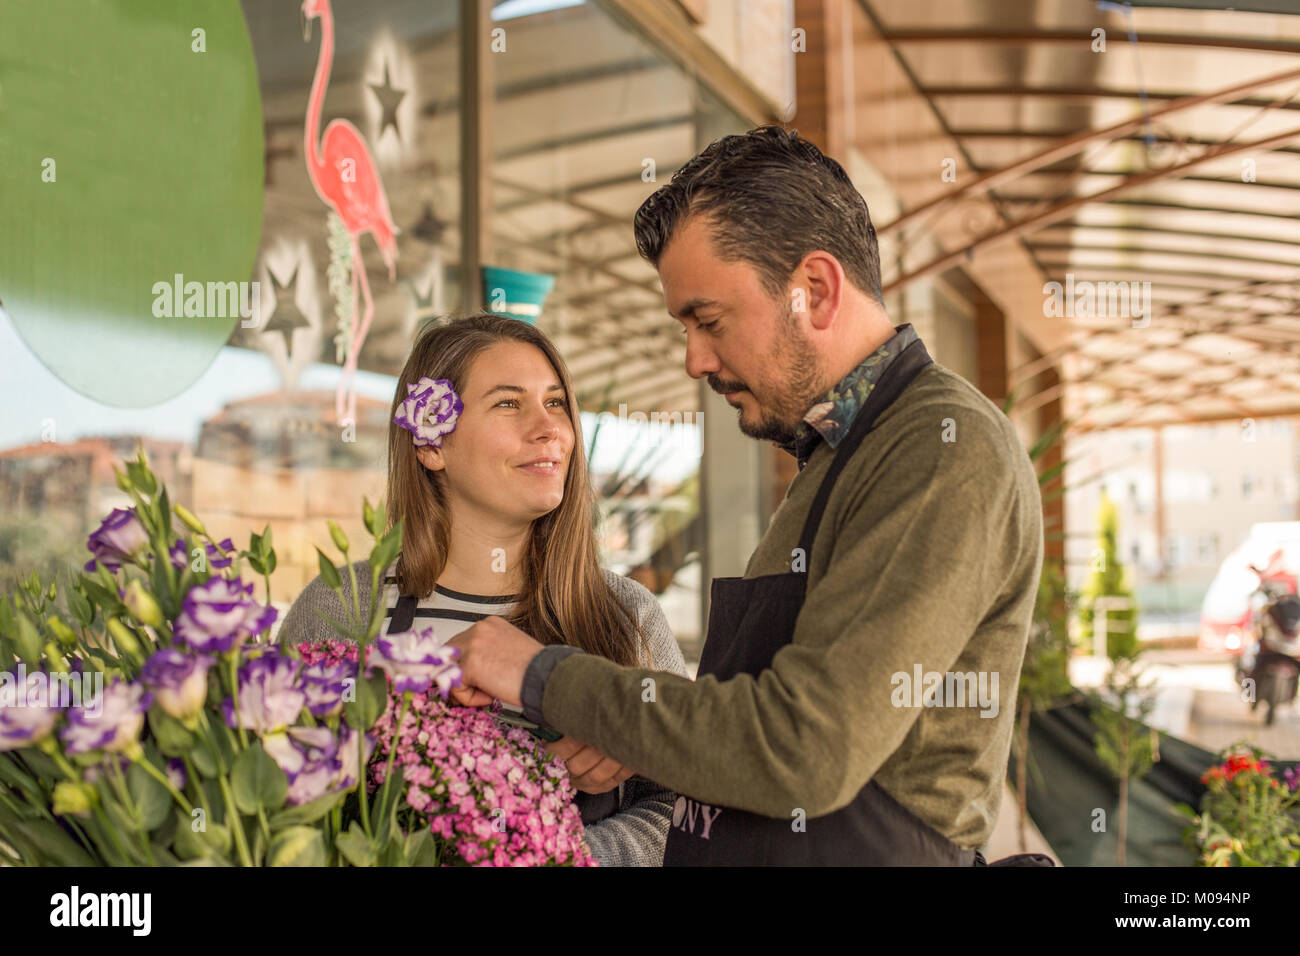 Small business concept. Male florist picking flowers and female florist with lisianthus in her hair looking at him - Stock Image